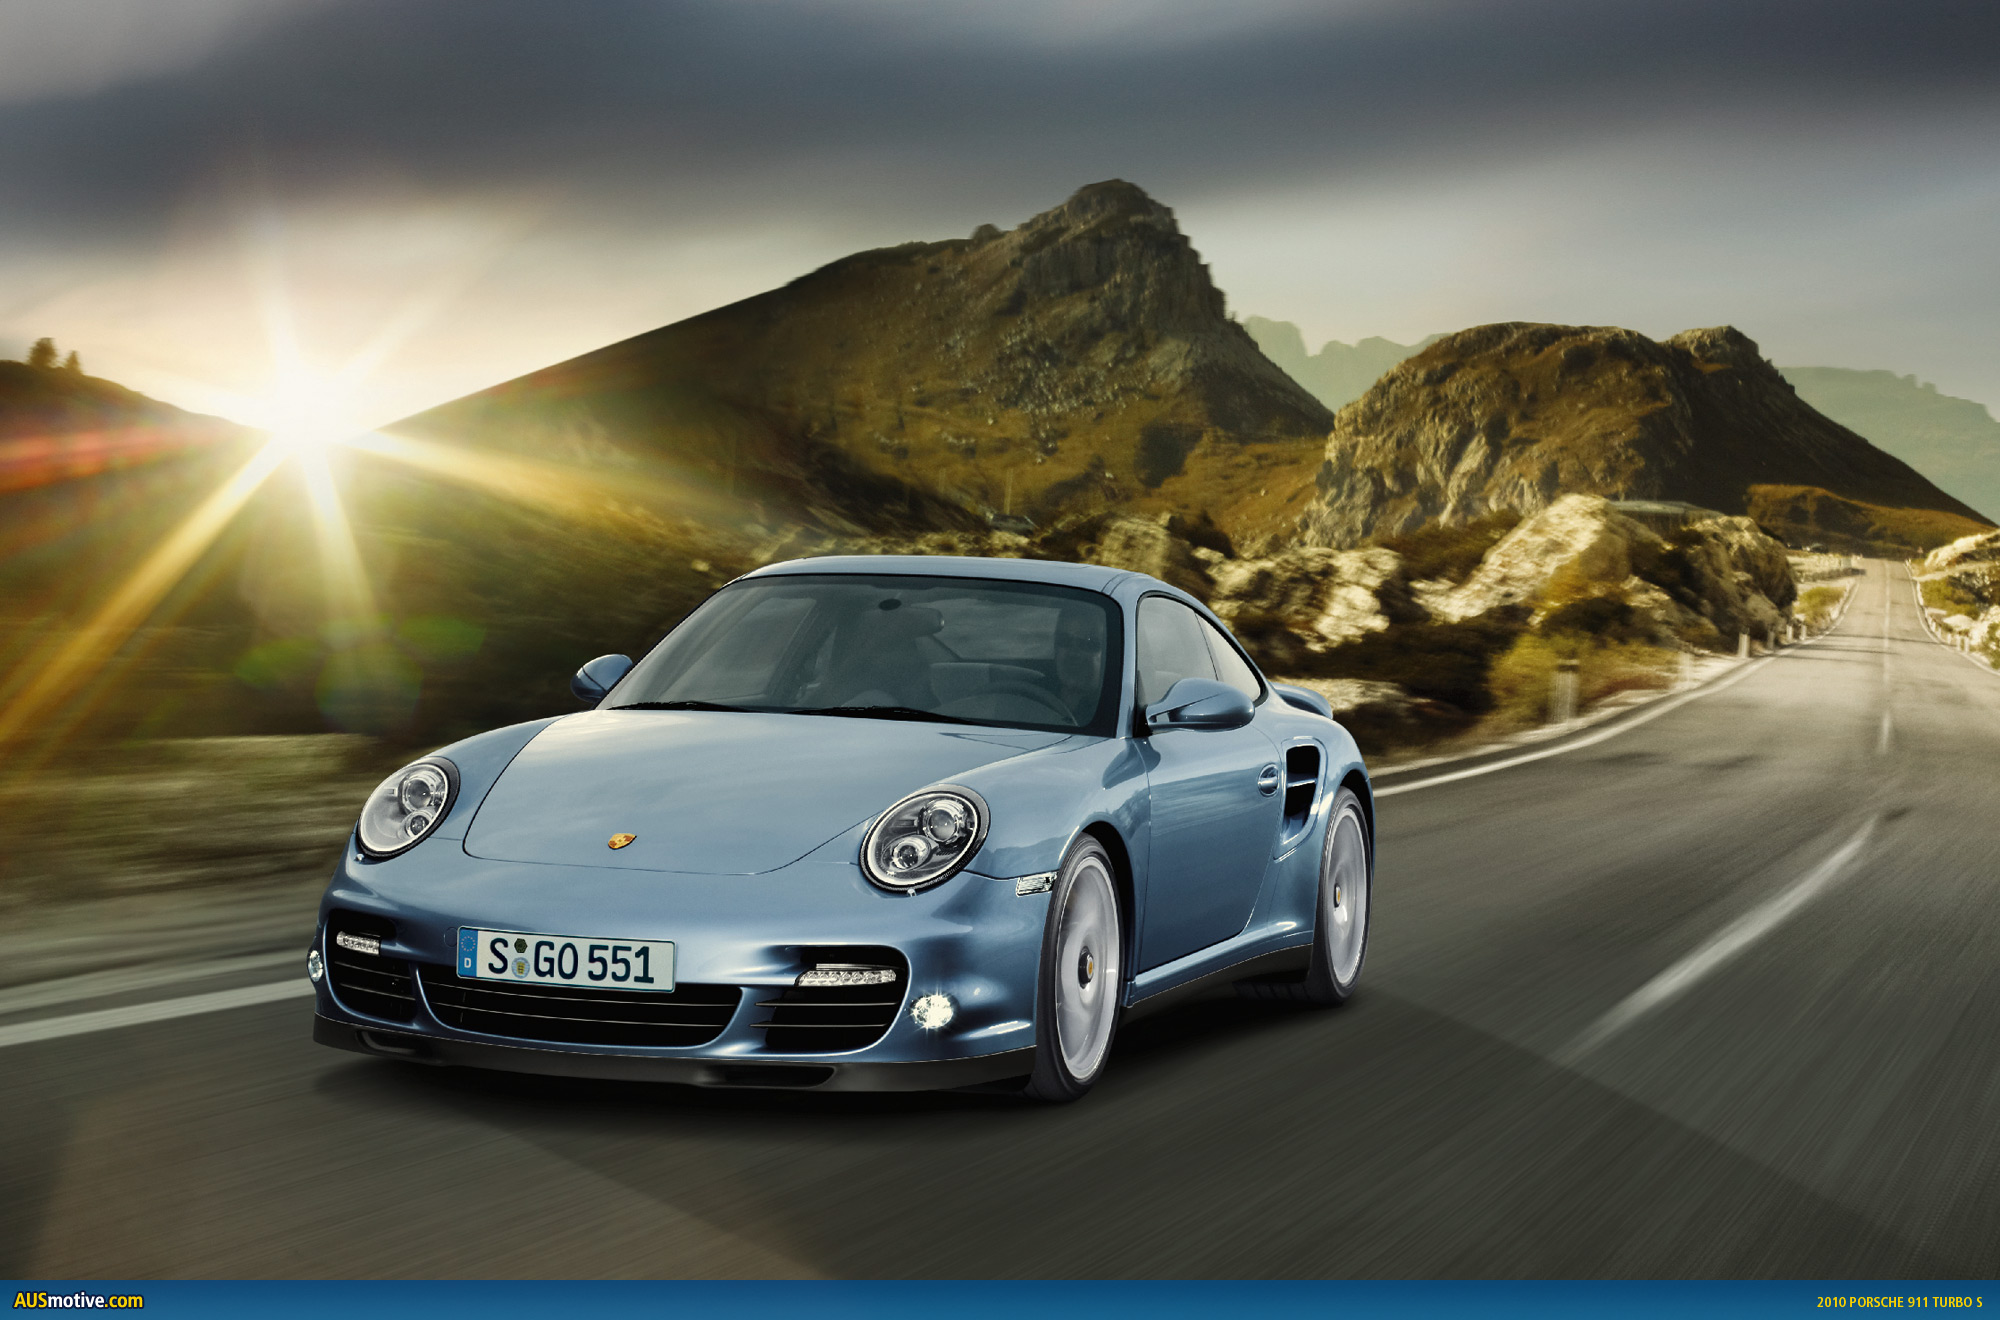 best sport car: 2011 Porsche 911 Turbo S